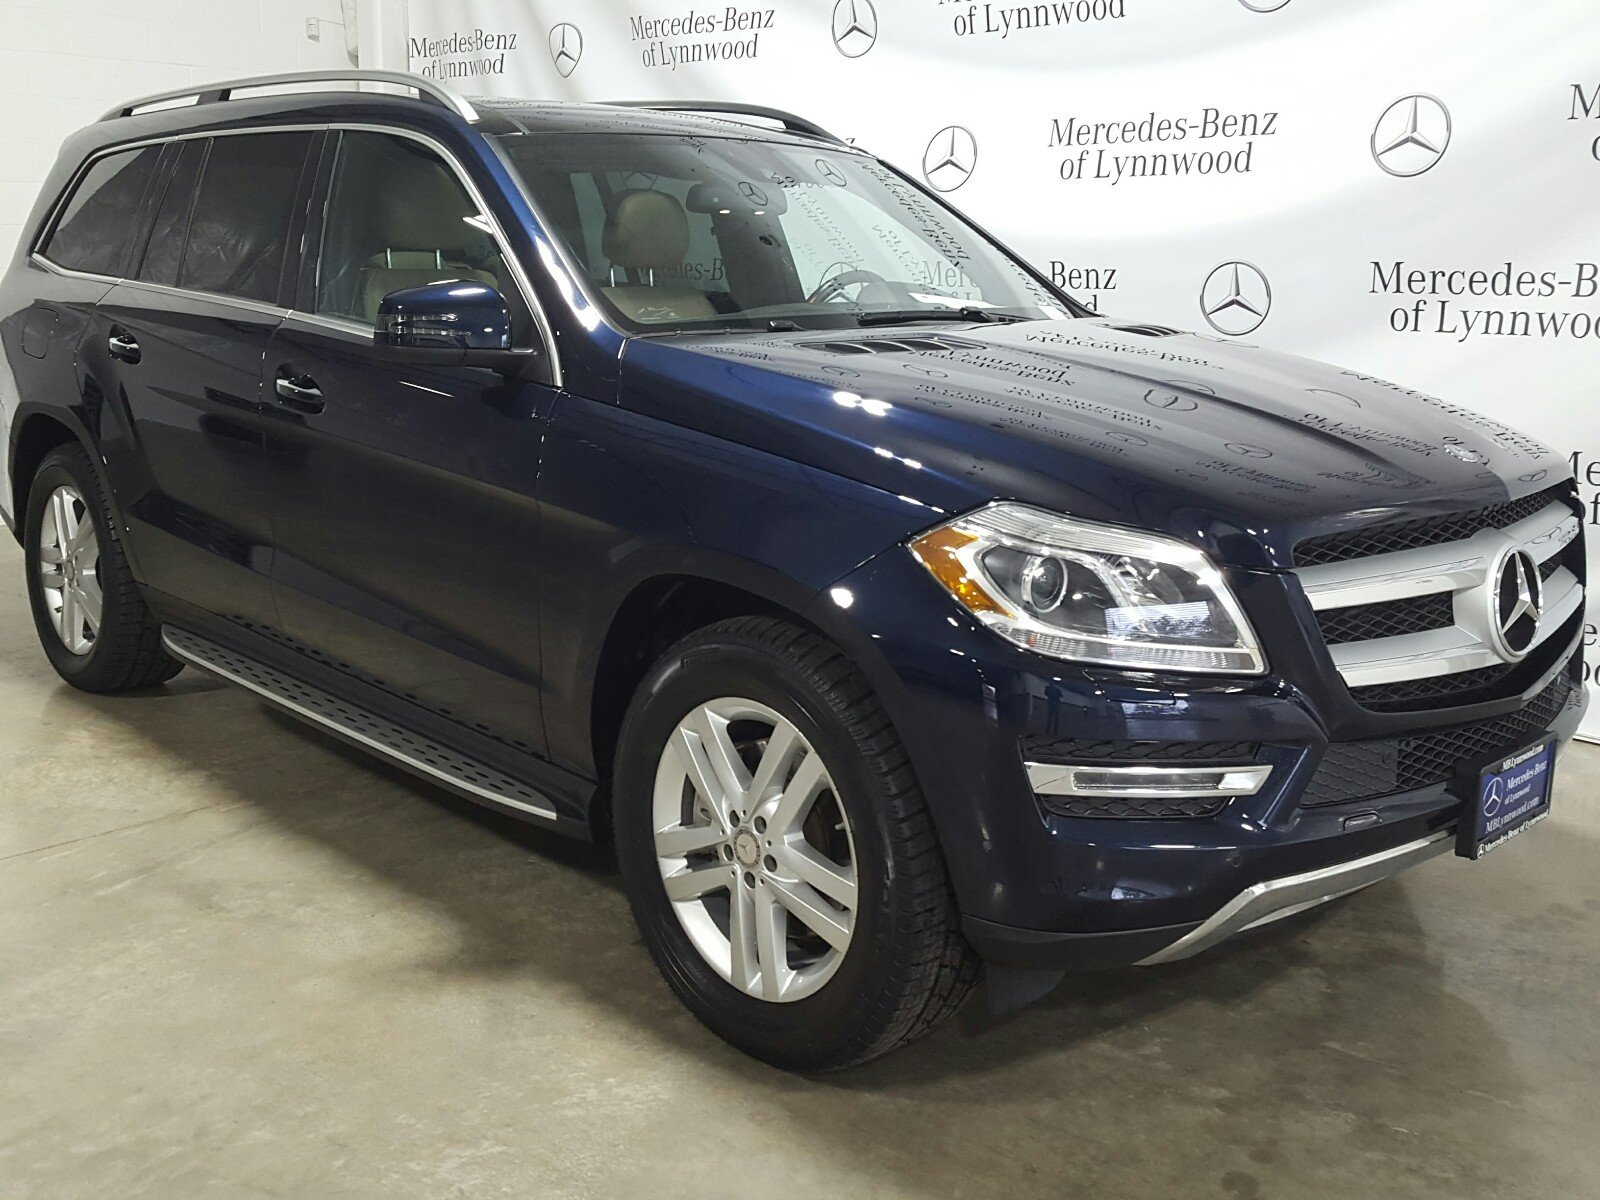 Certified Pre Owned 2016 Mercedes Benz GL GL 350 BlueTEC 4MATIC